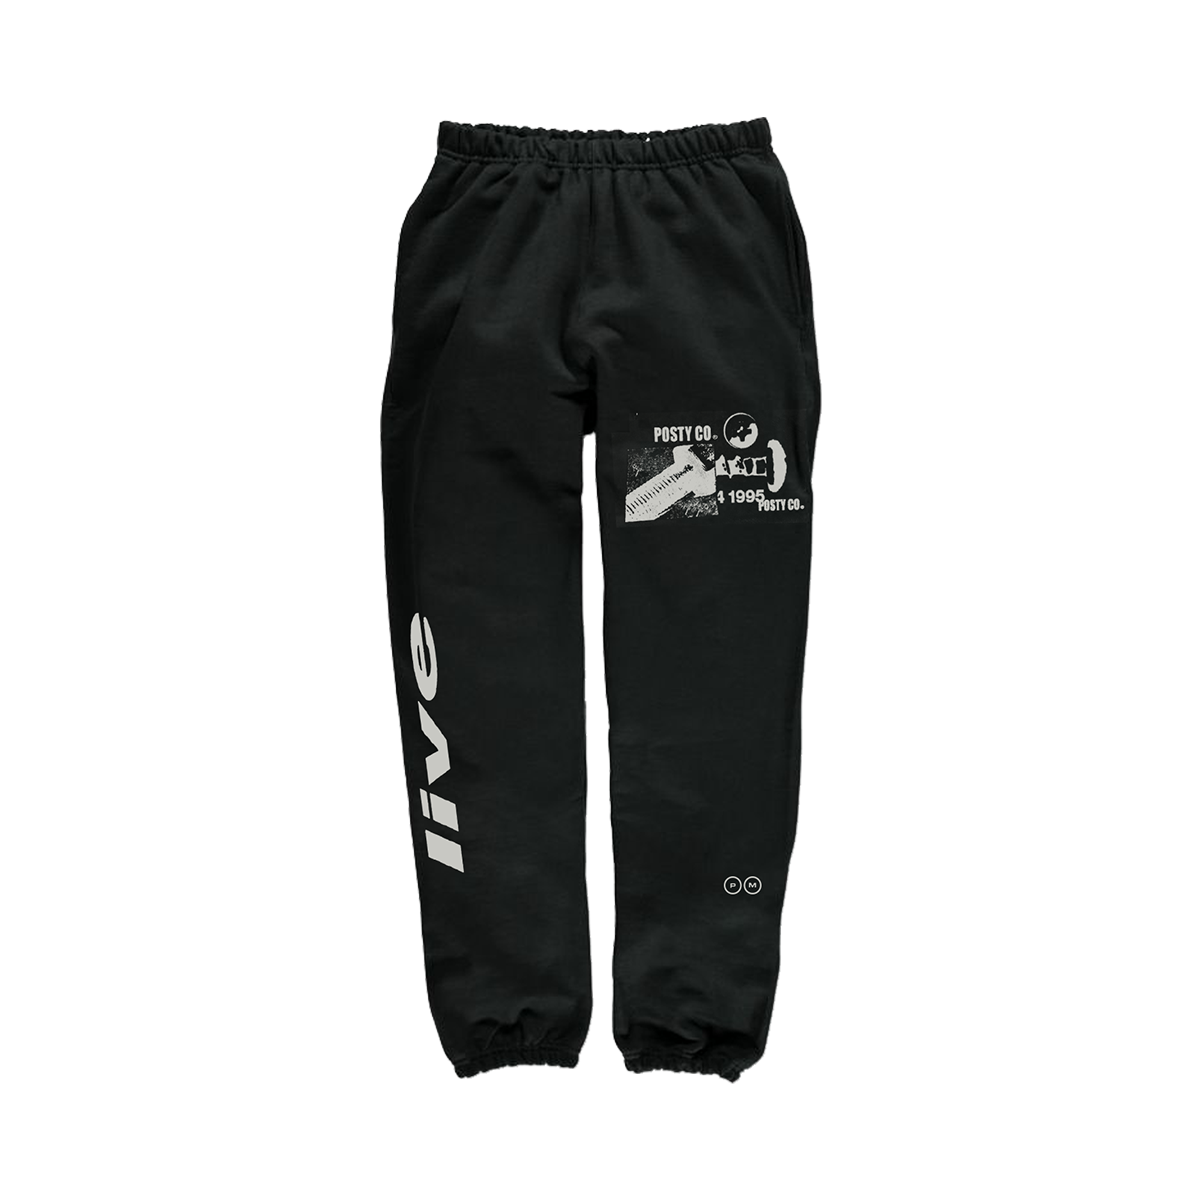 Posty Co Sweatpants